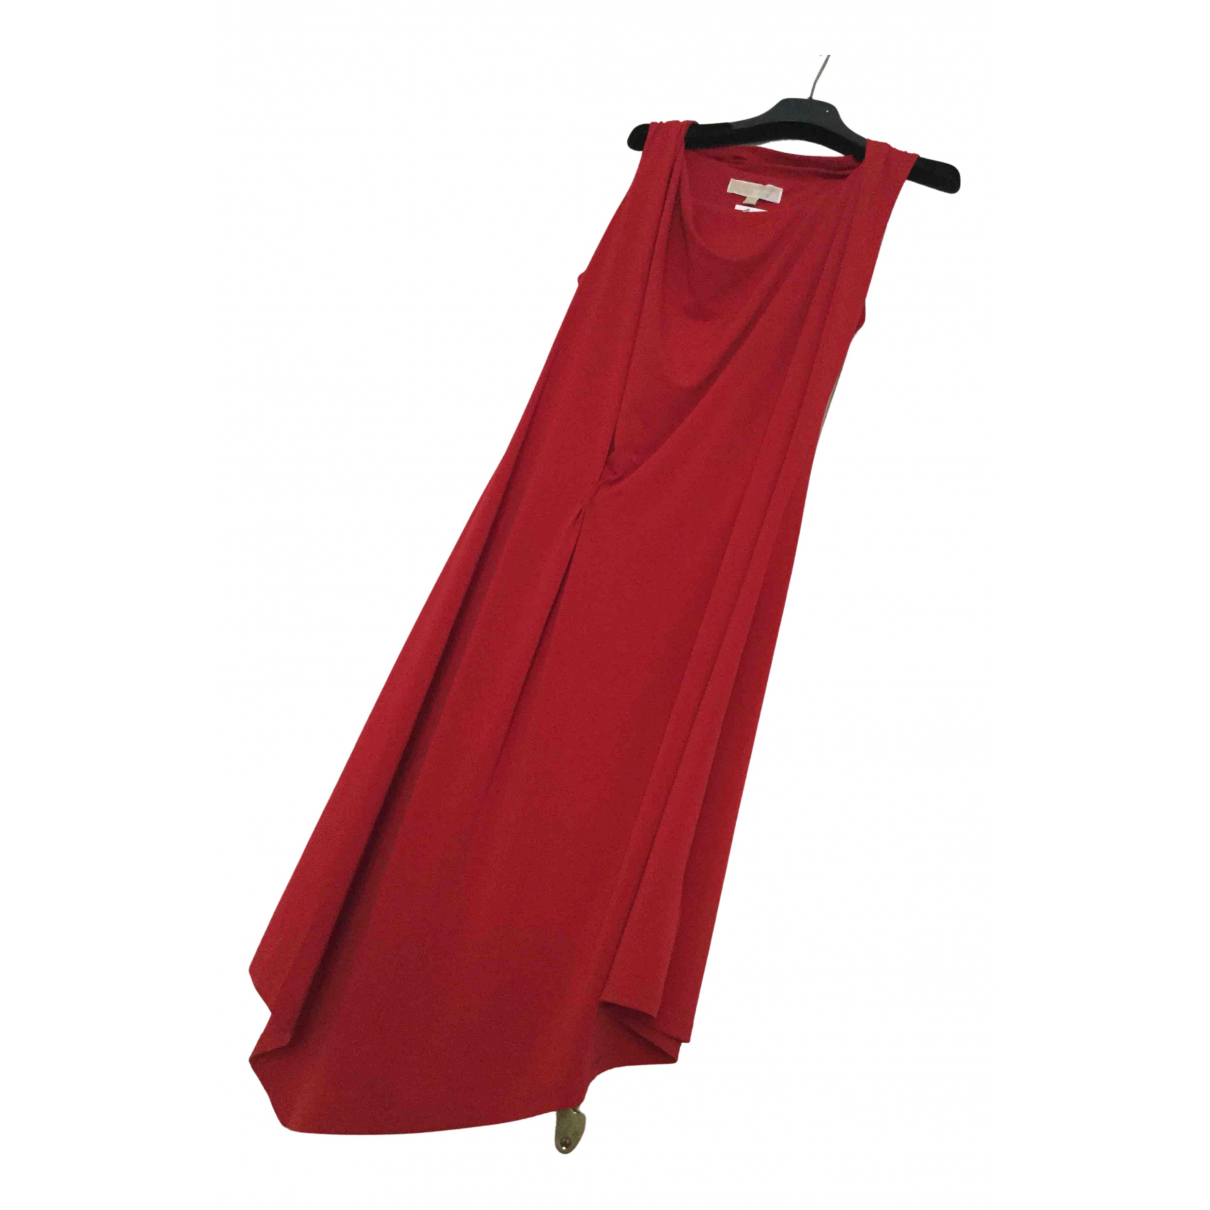 Michael Kors \N Kleid in  Rot Polyester